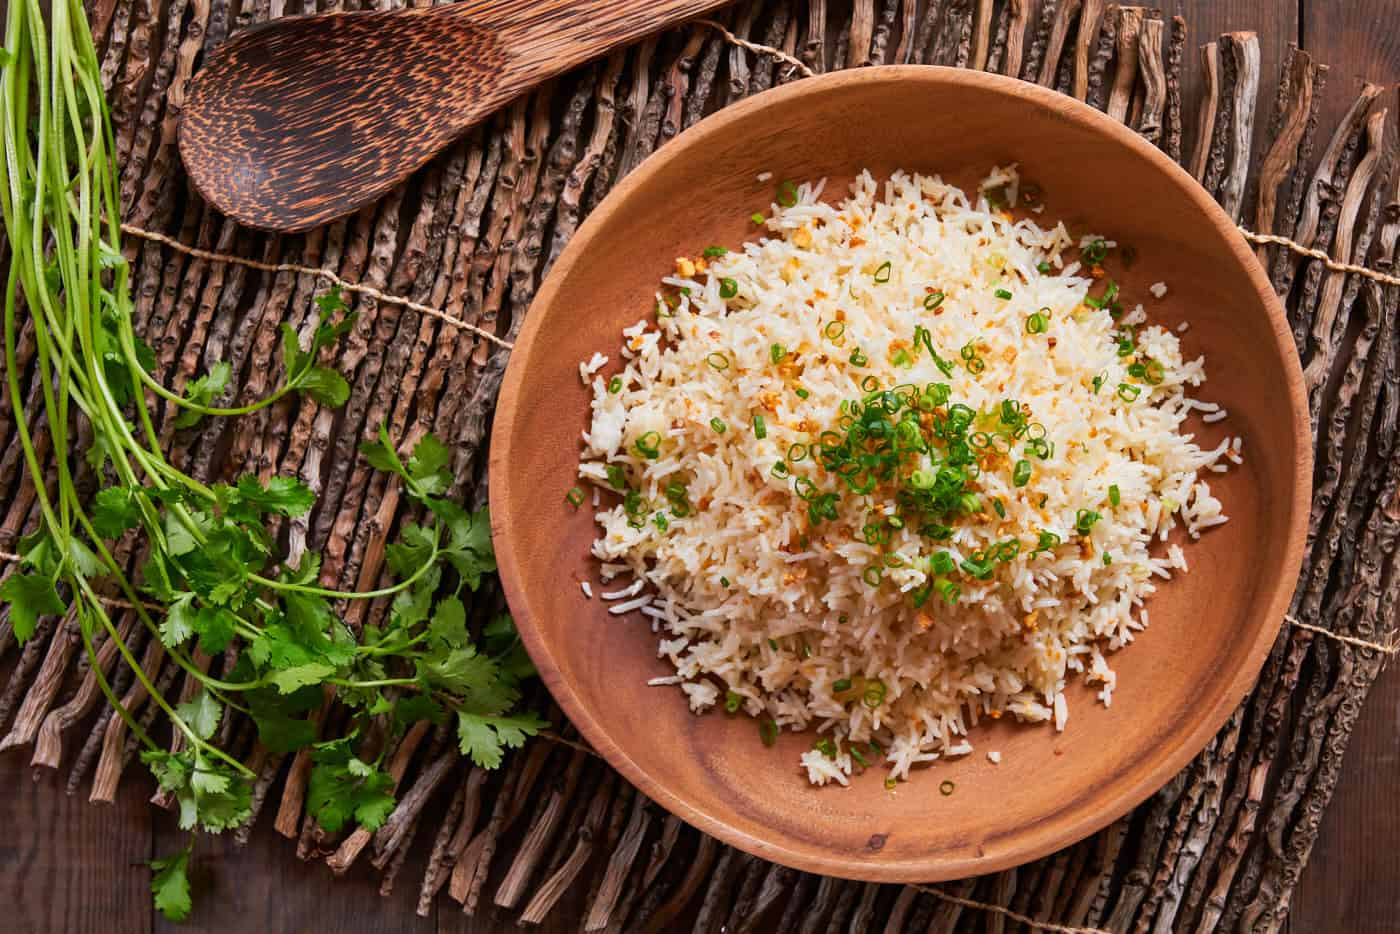 With crispy caramelized garlic and rice, this simple 2 ingredient Sinangag (Garlic Fried Rice) makes for an incredibly flavorful side.